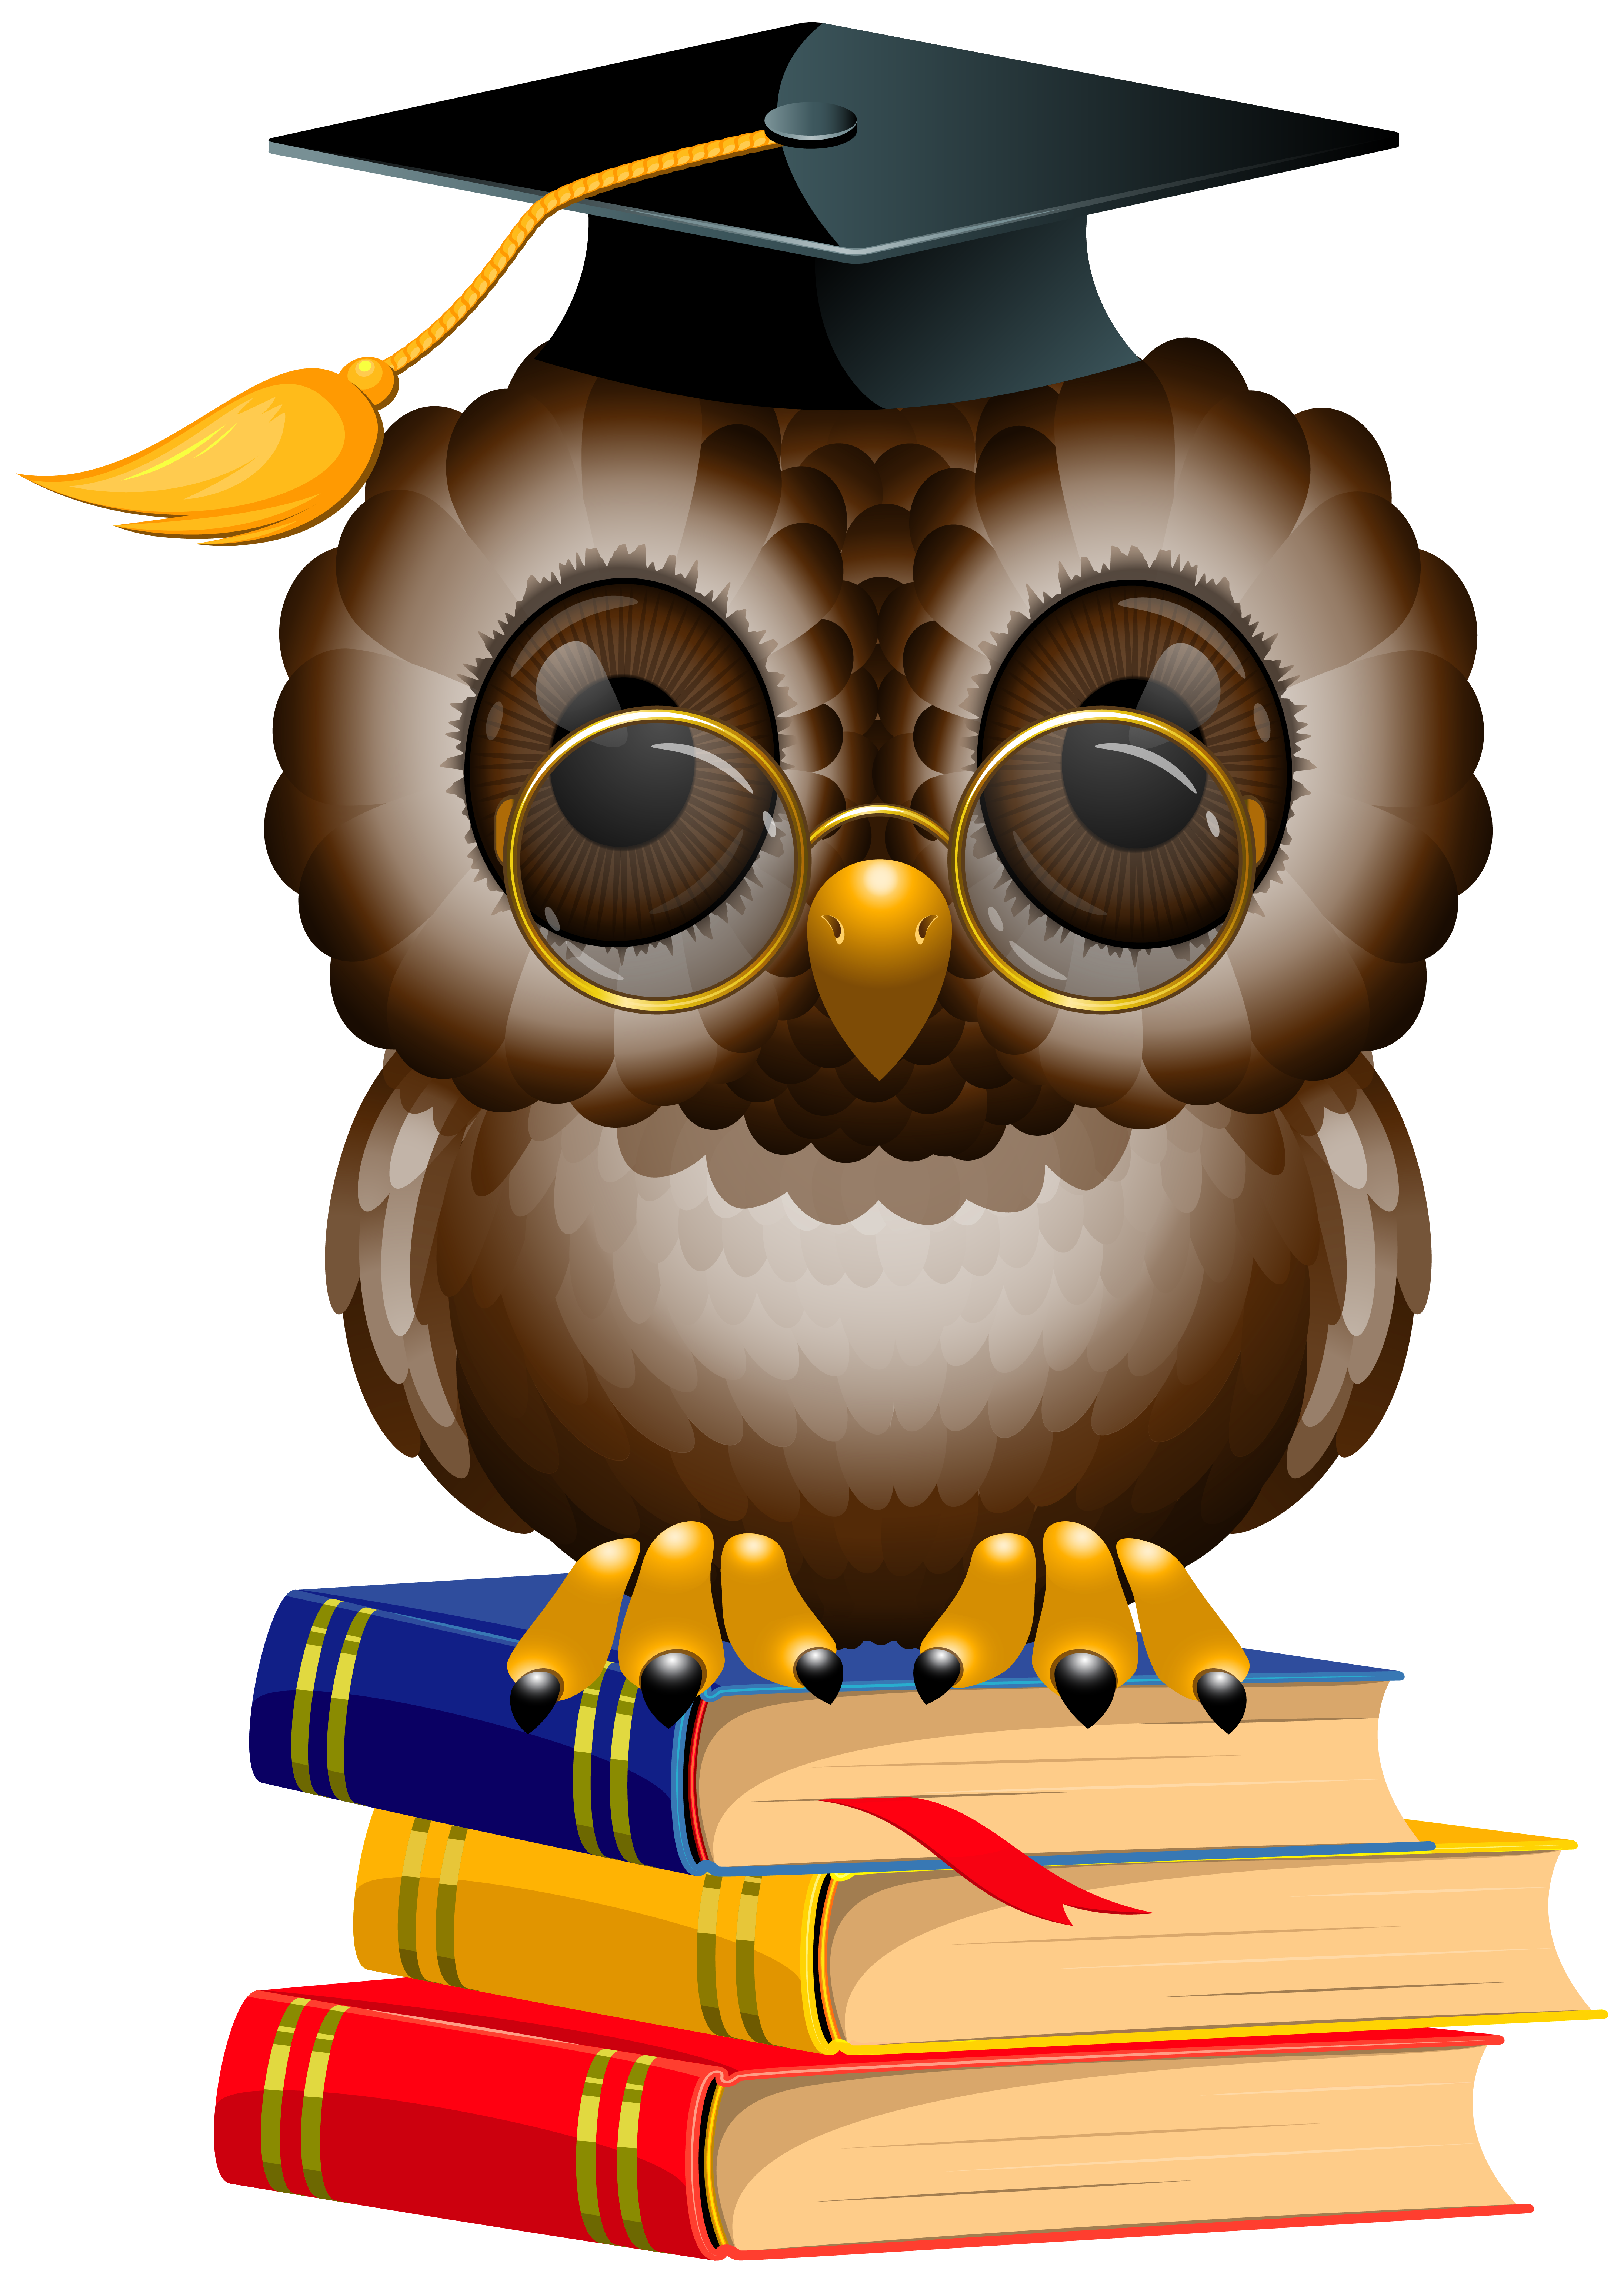 Parking lot clipart vacant lot. Owl with school books